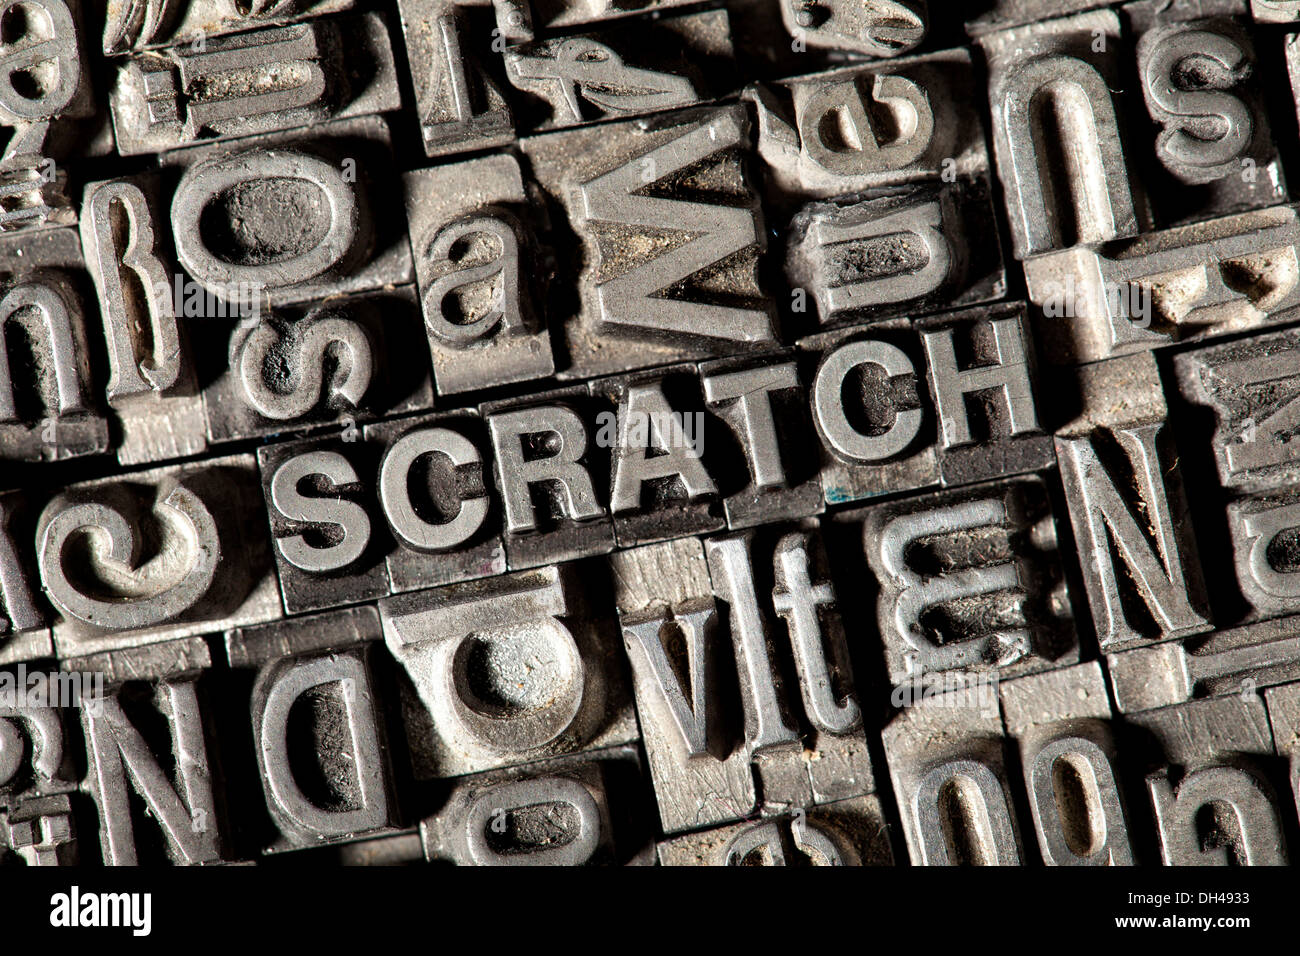 scratch letters stock photos scratch letters stock images alamy